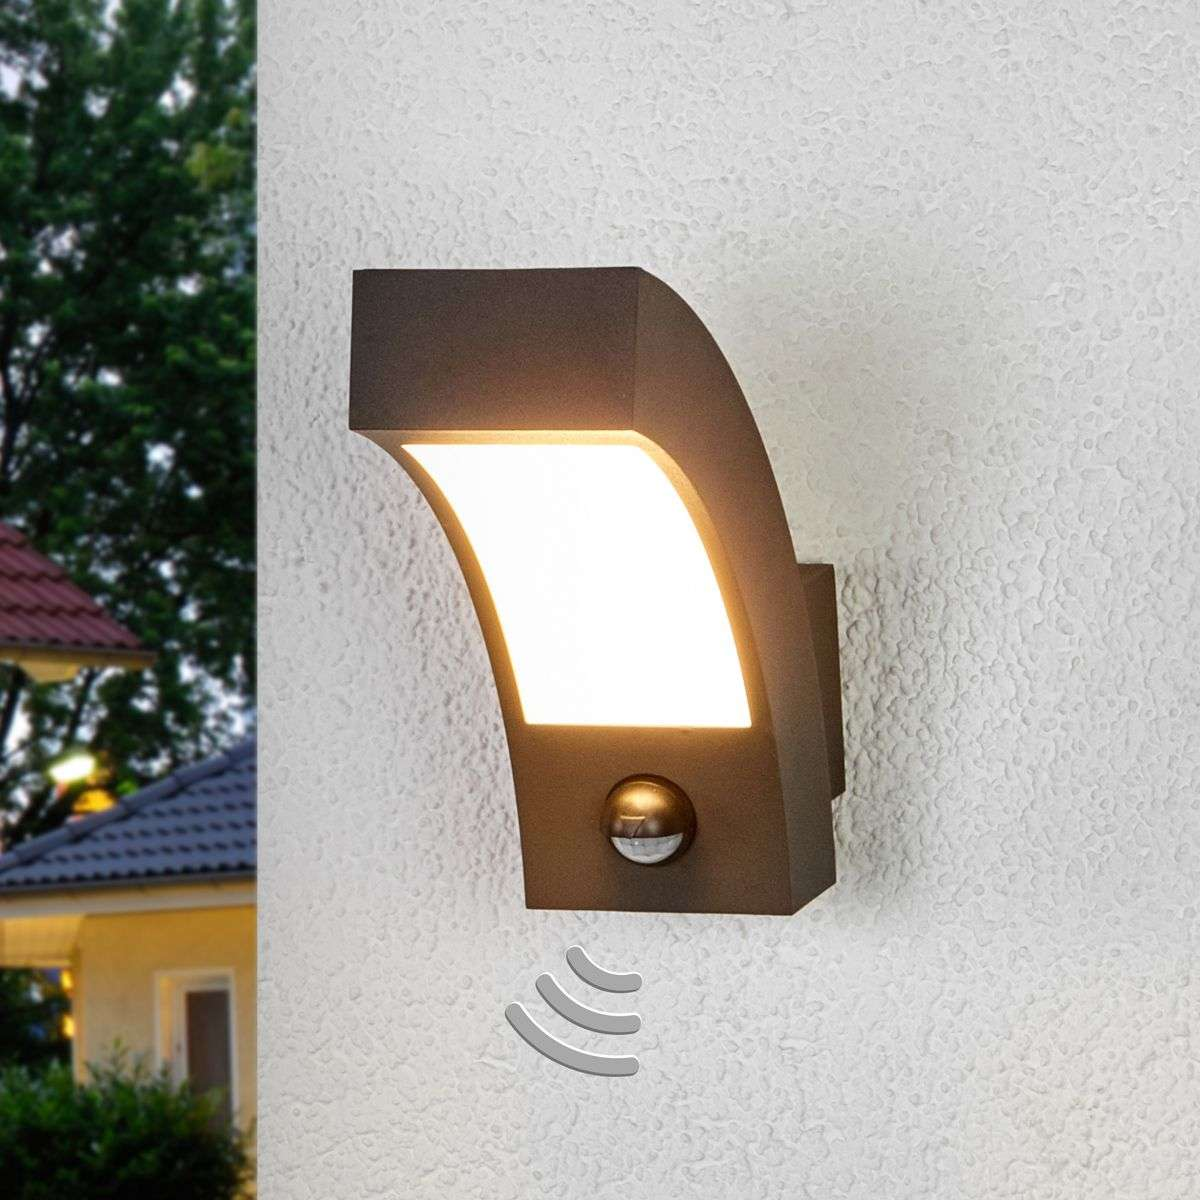 Lennik led exterior wall lamp with motion detector for Exterior wall light with motion sensor